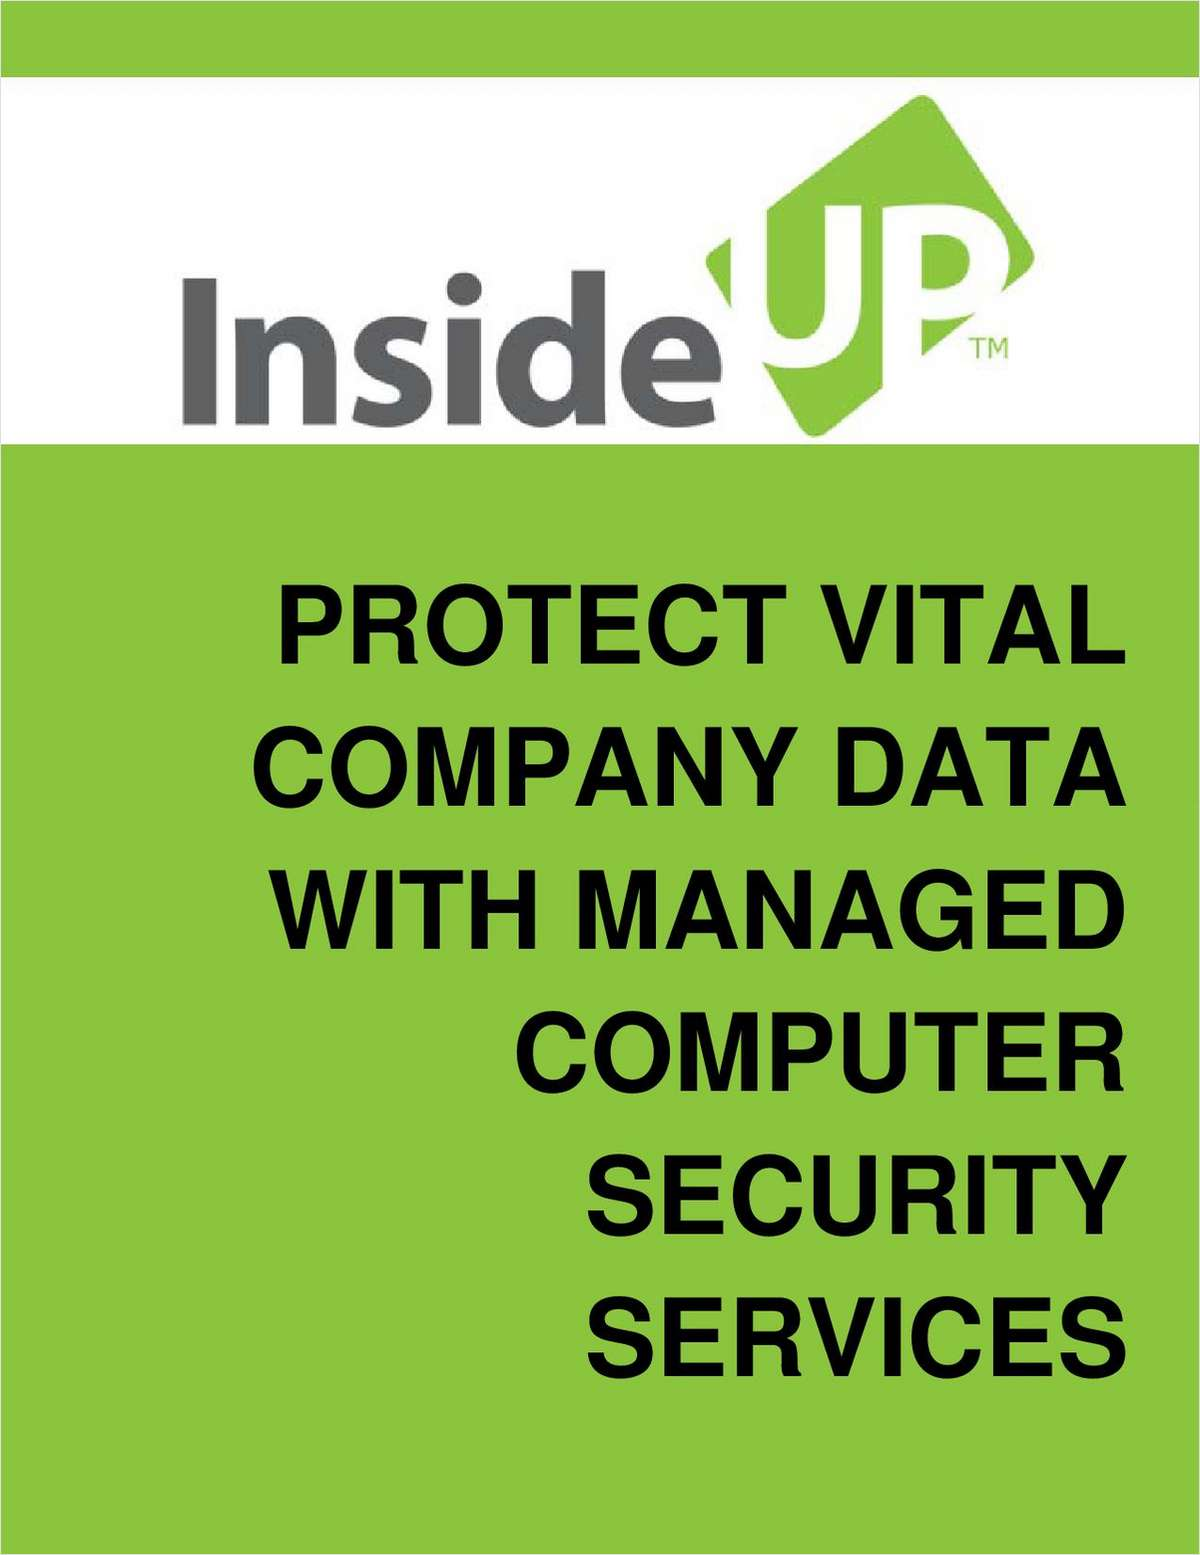 How To Cost-Effectively Manage The Security of Your Company's IT Infrastructure